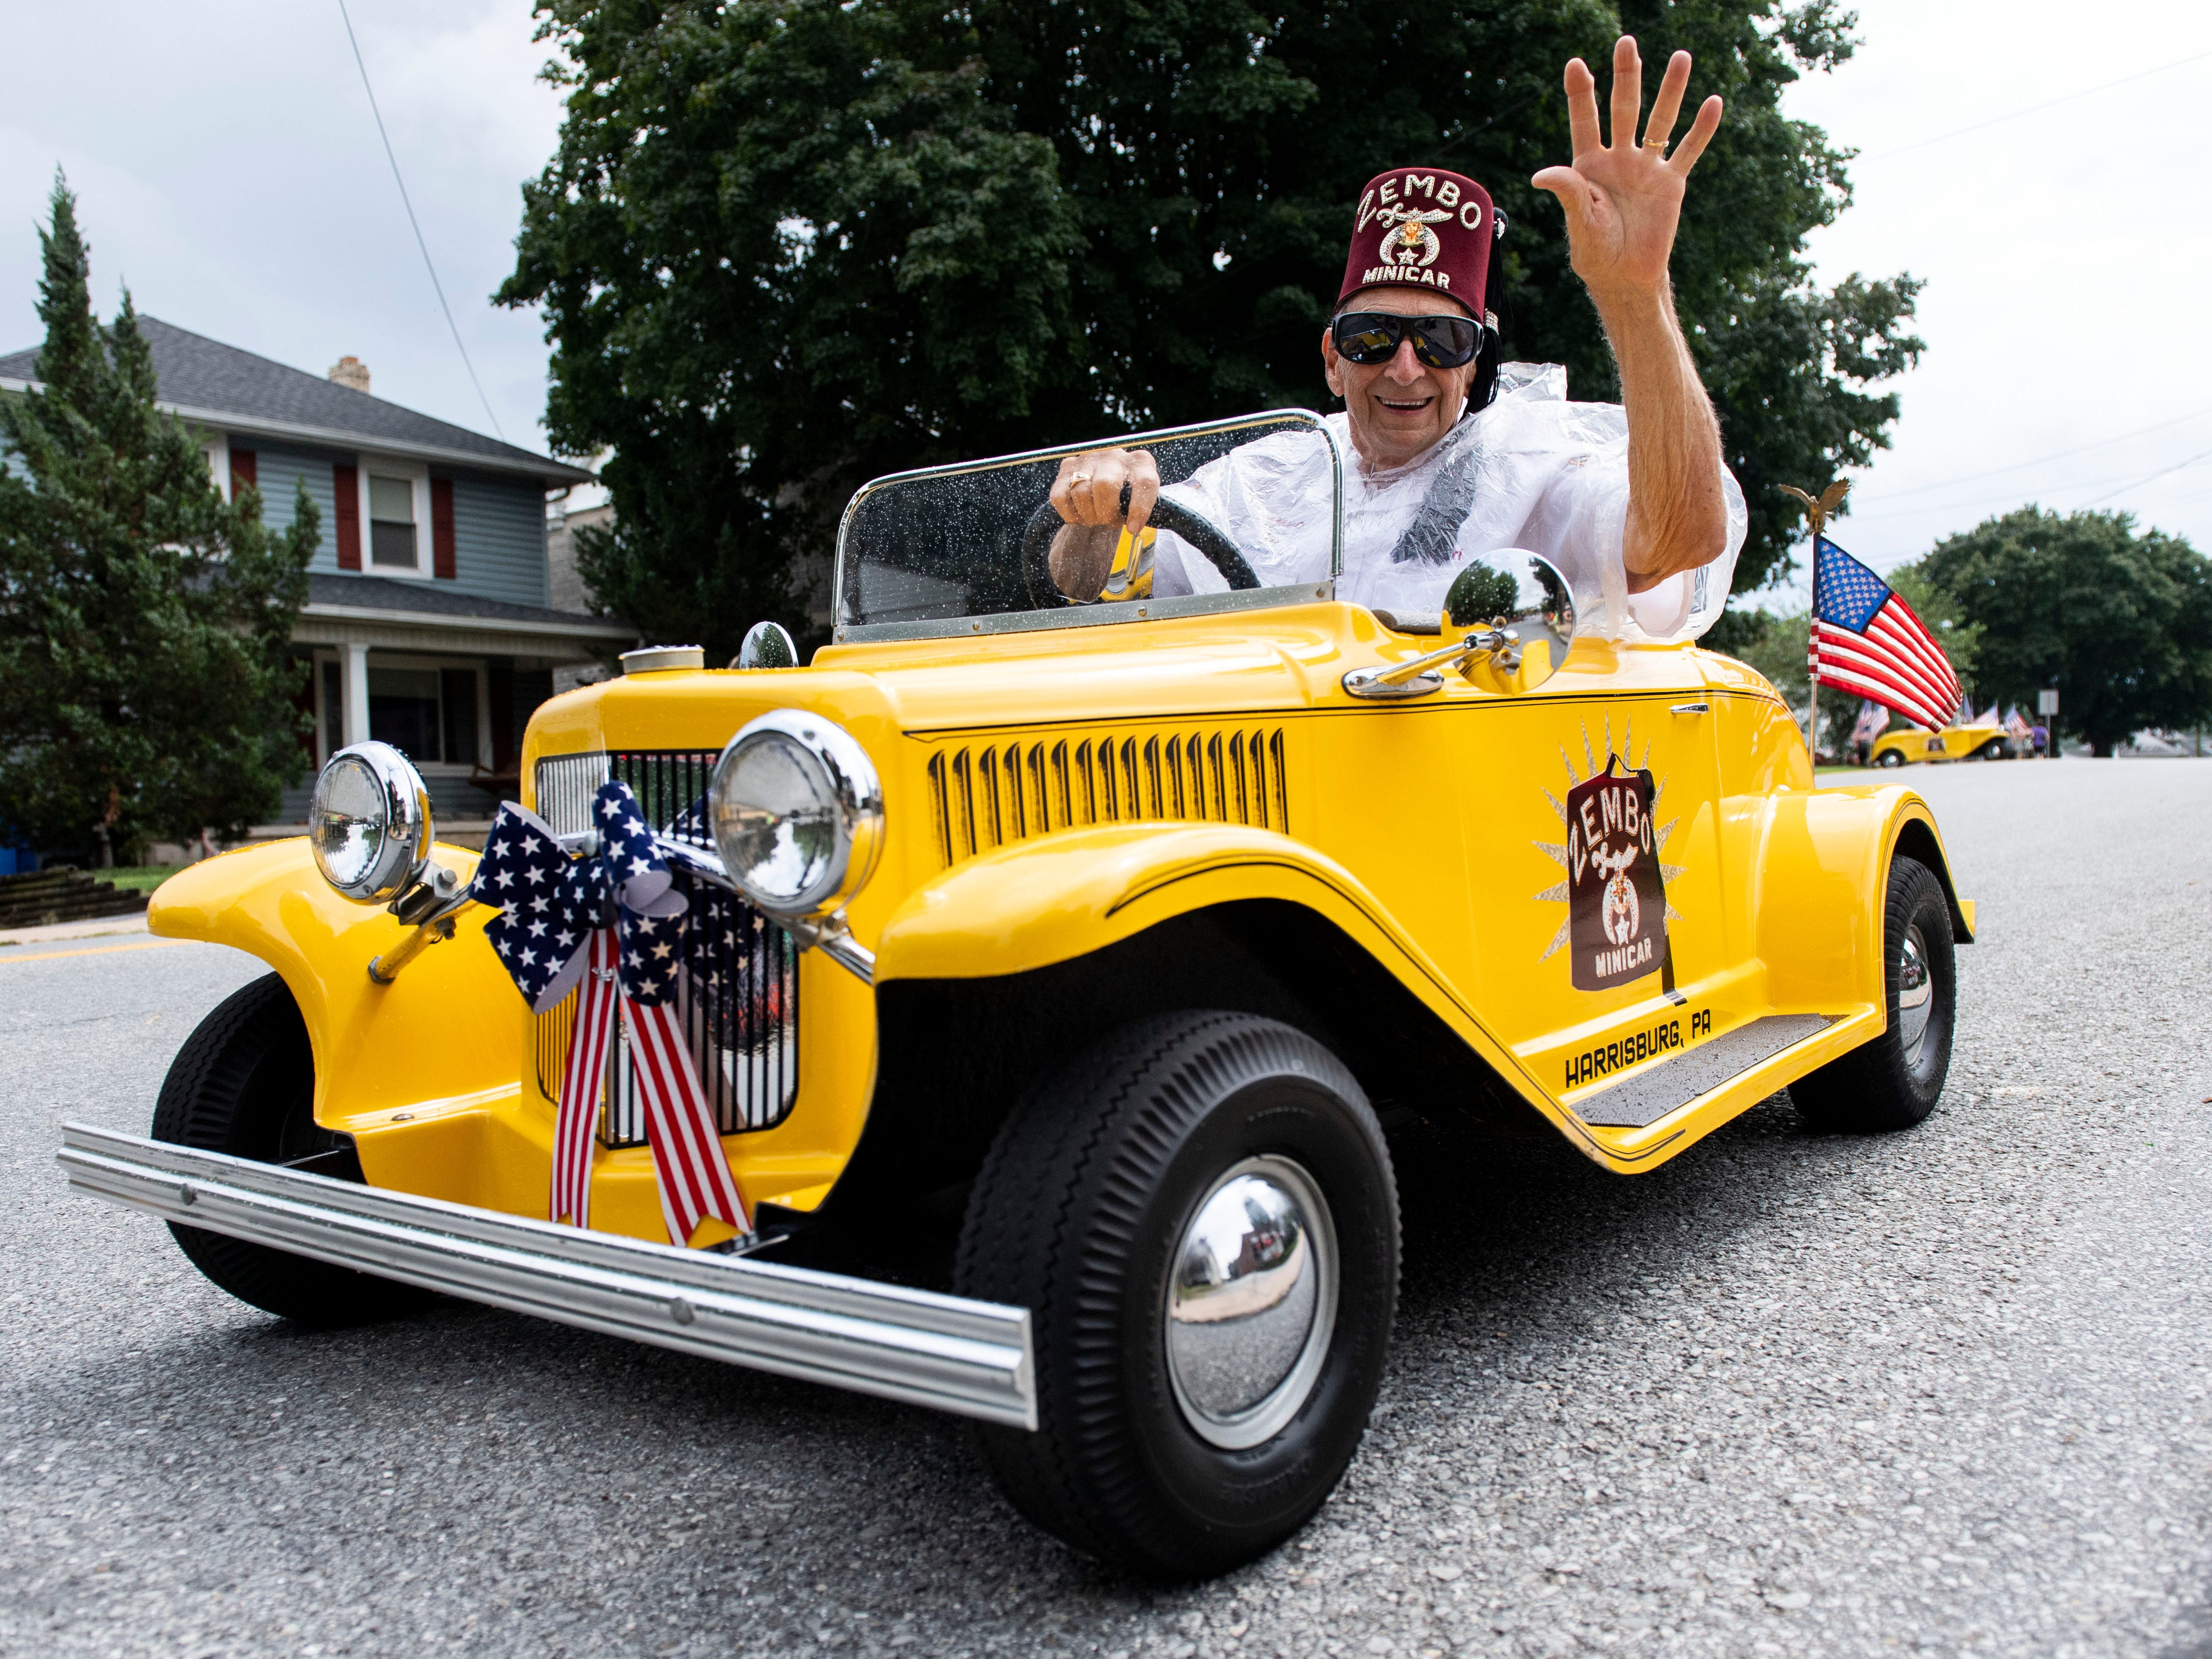 A Zembo minicar driver waves while doing a routine during the York County Fireman's Parade, celebrating Alert Fire Company's 100th year, Saturday, August 18, 2018.